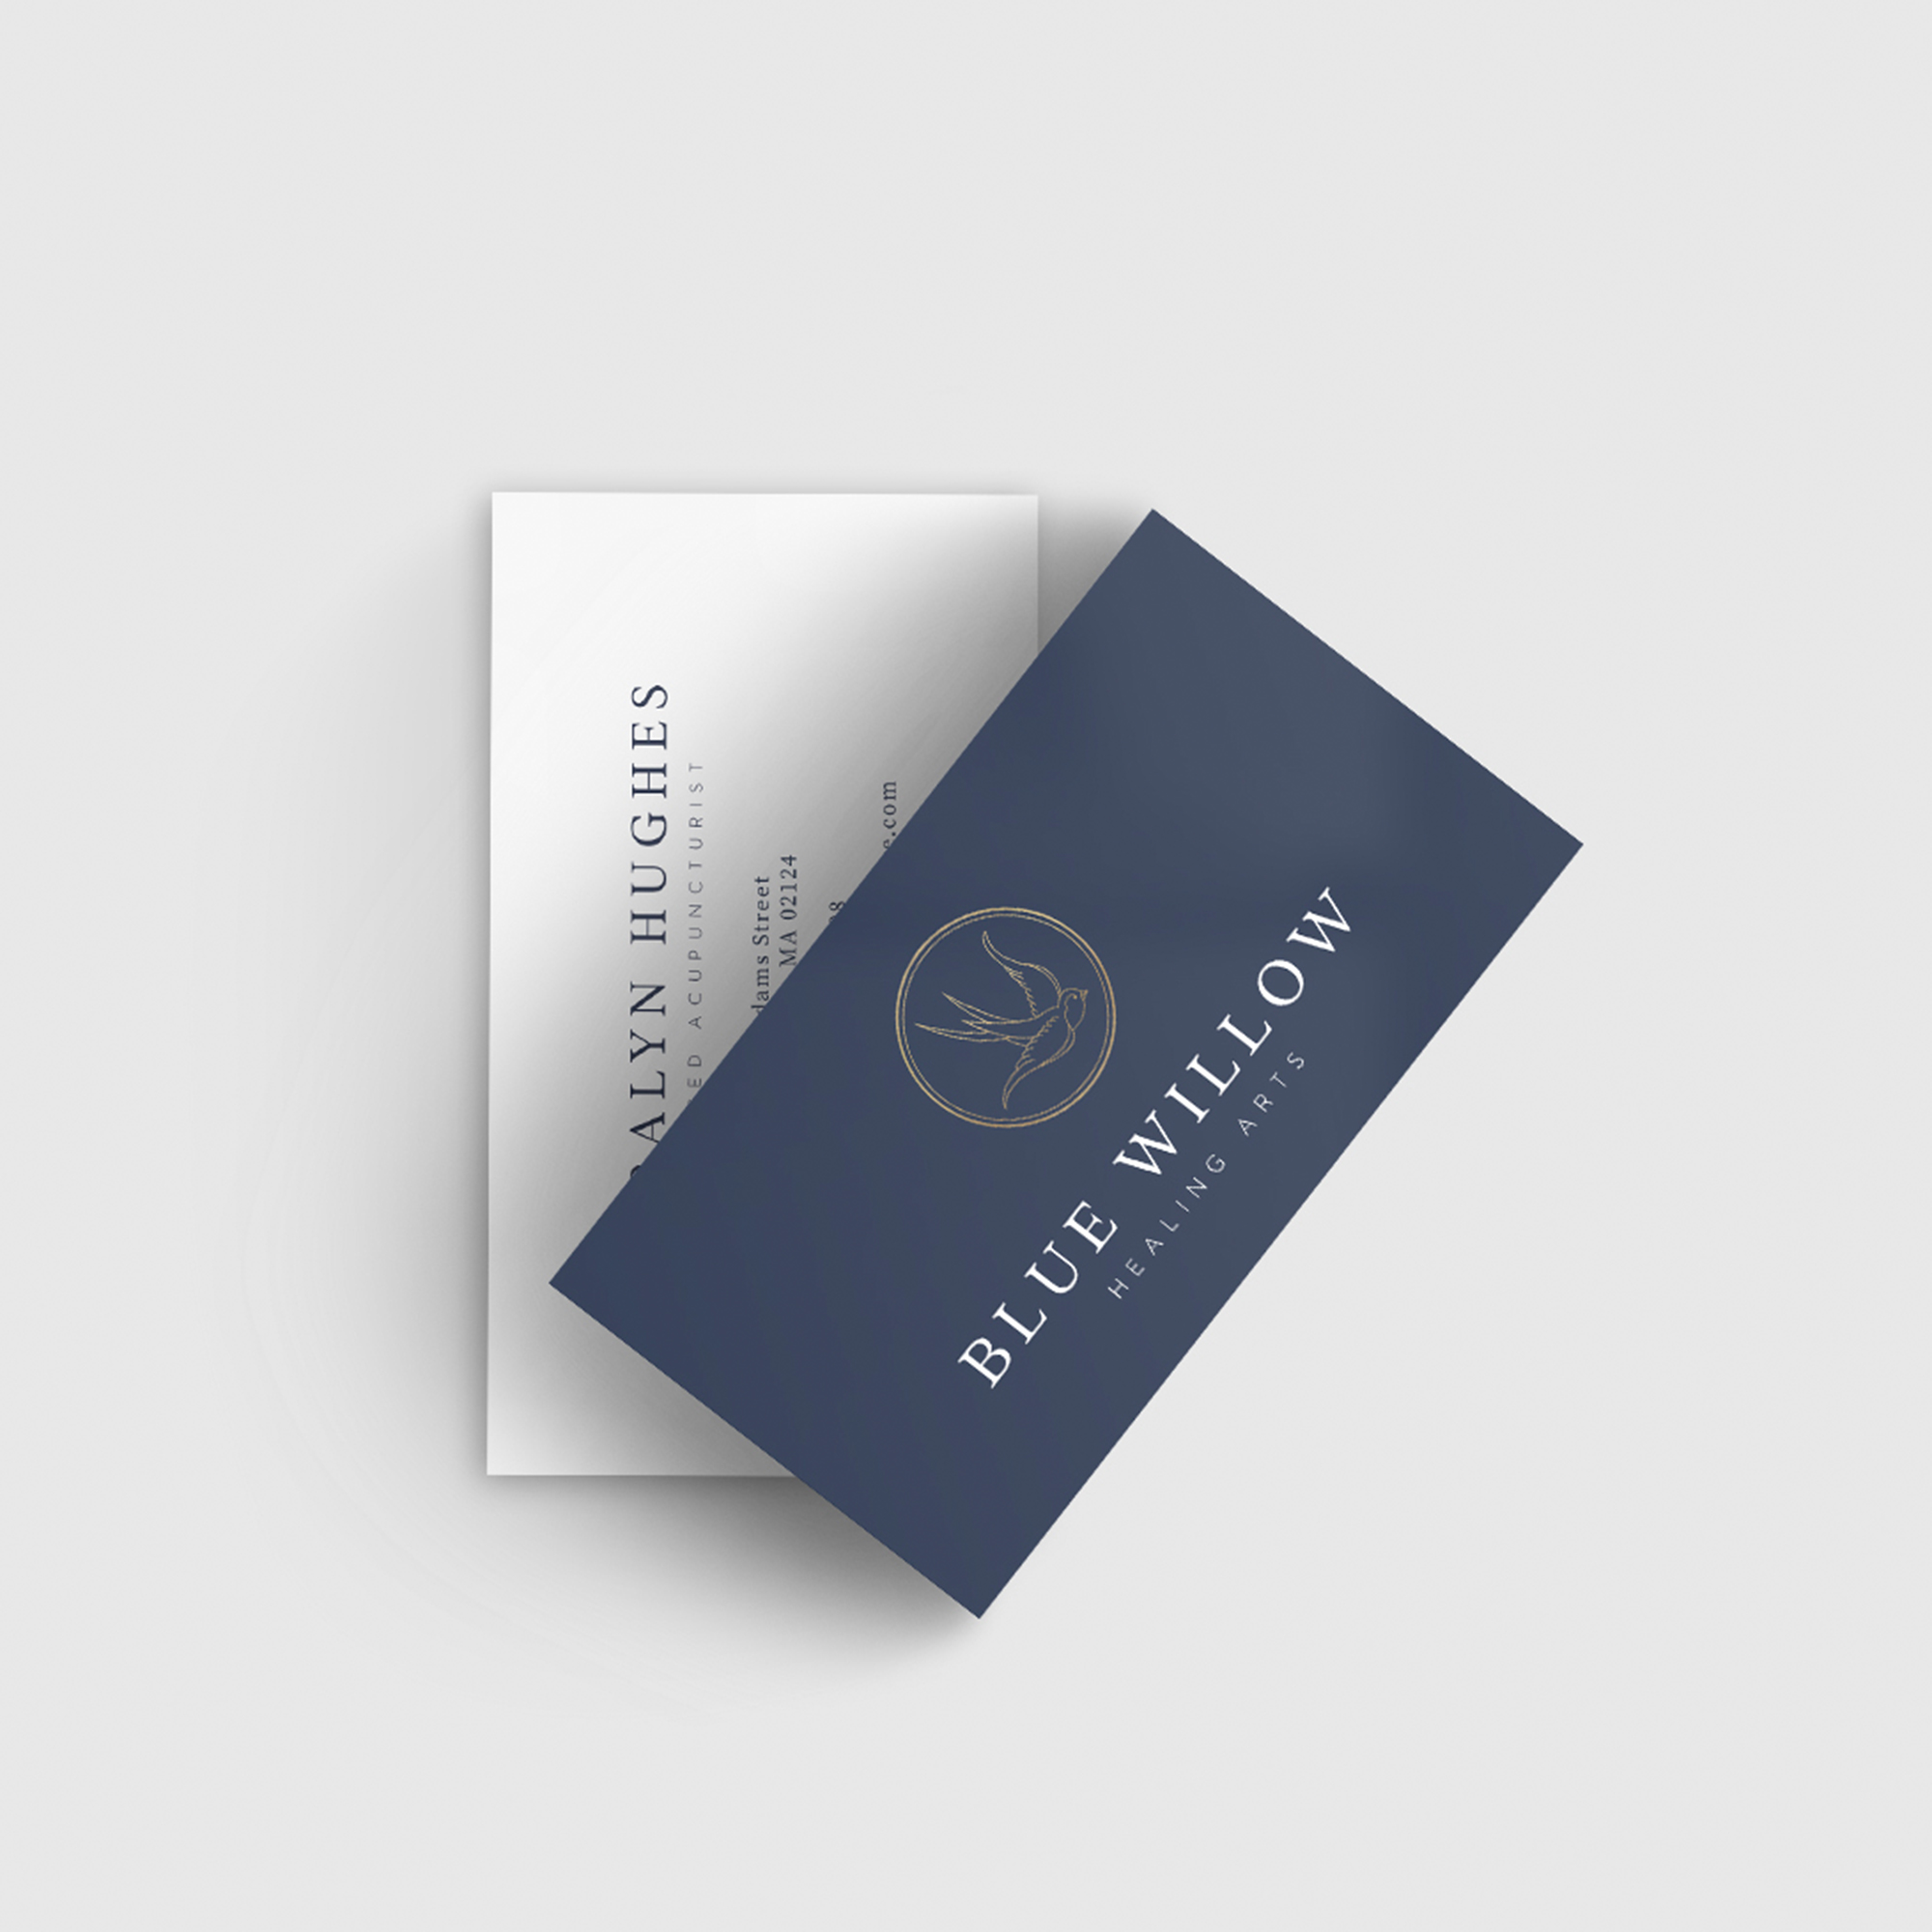 Business card design for Blue Willow Healing Arts, a Massachusetts-based acupuncture and wellness practice, by Alexa B. Creative & Design